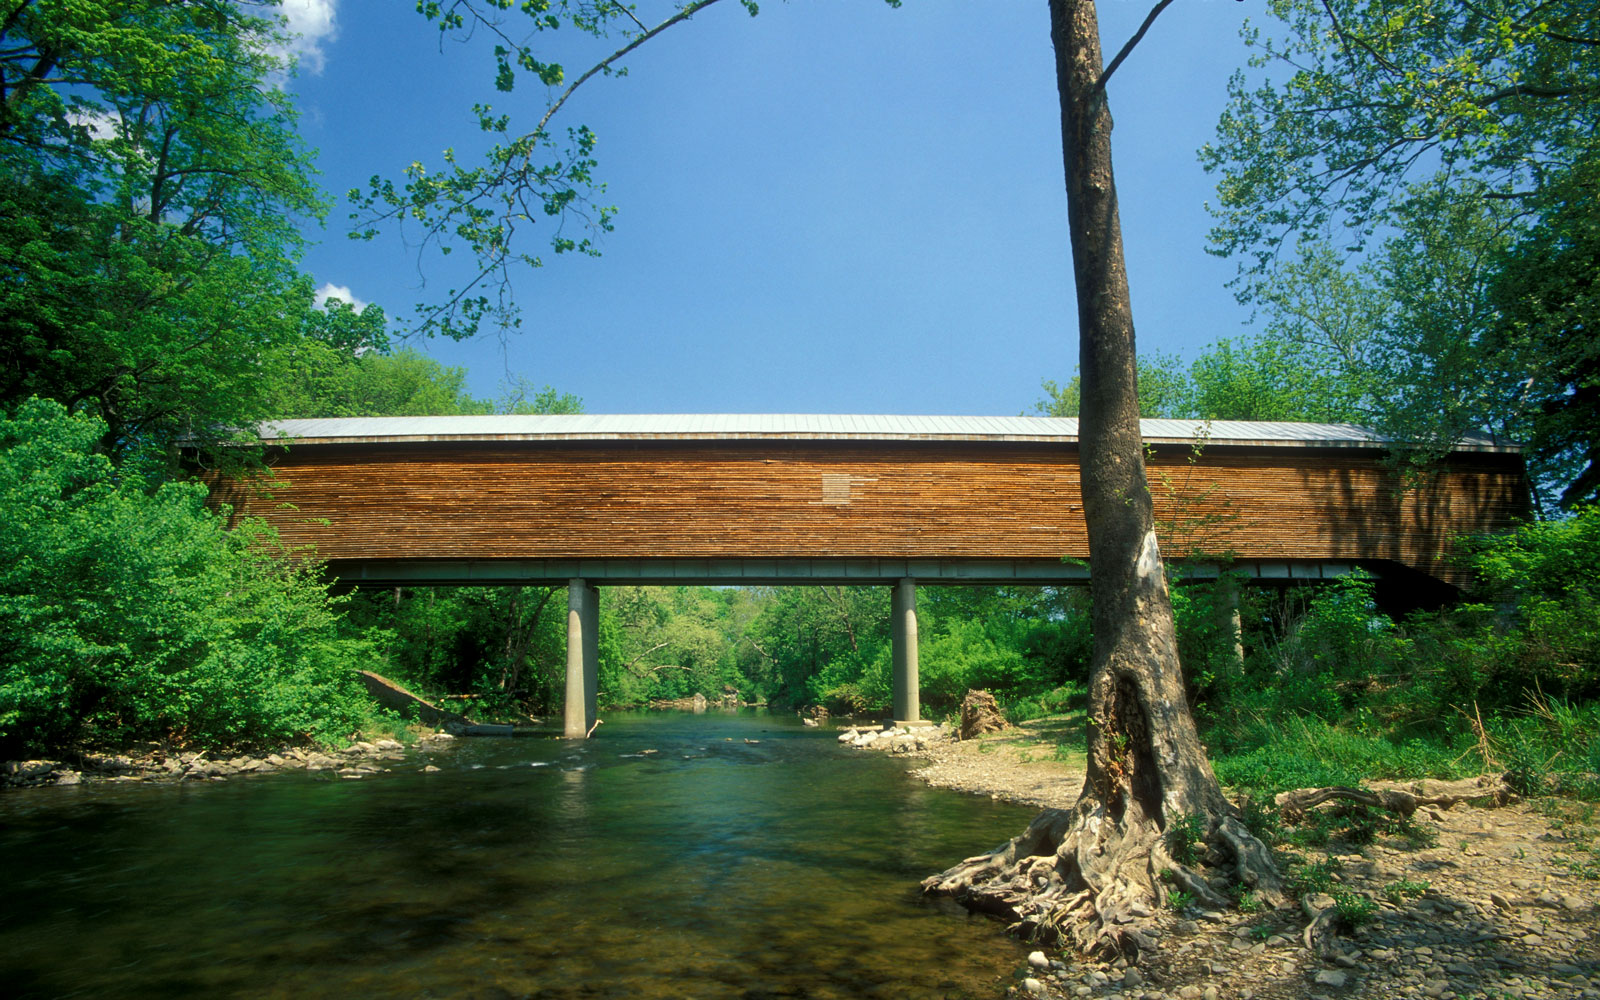 America's Most Beautiful Covered Bridges: Meem's Bottom Bridge